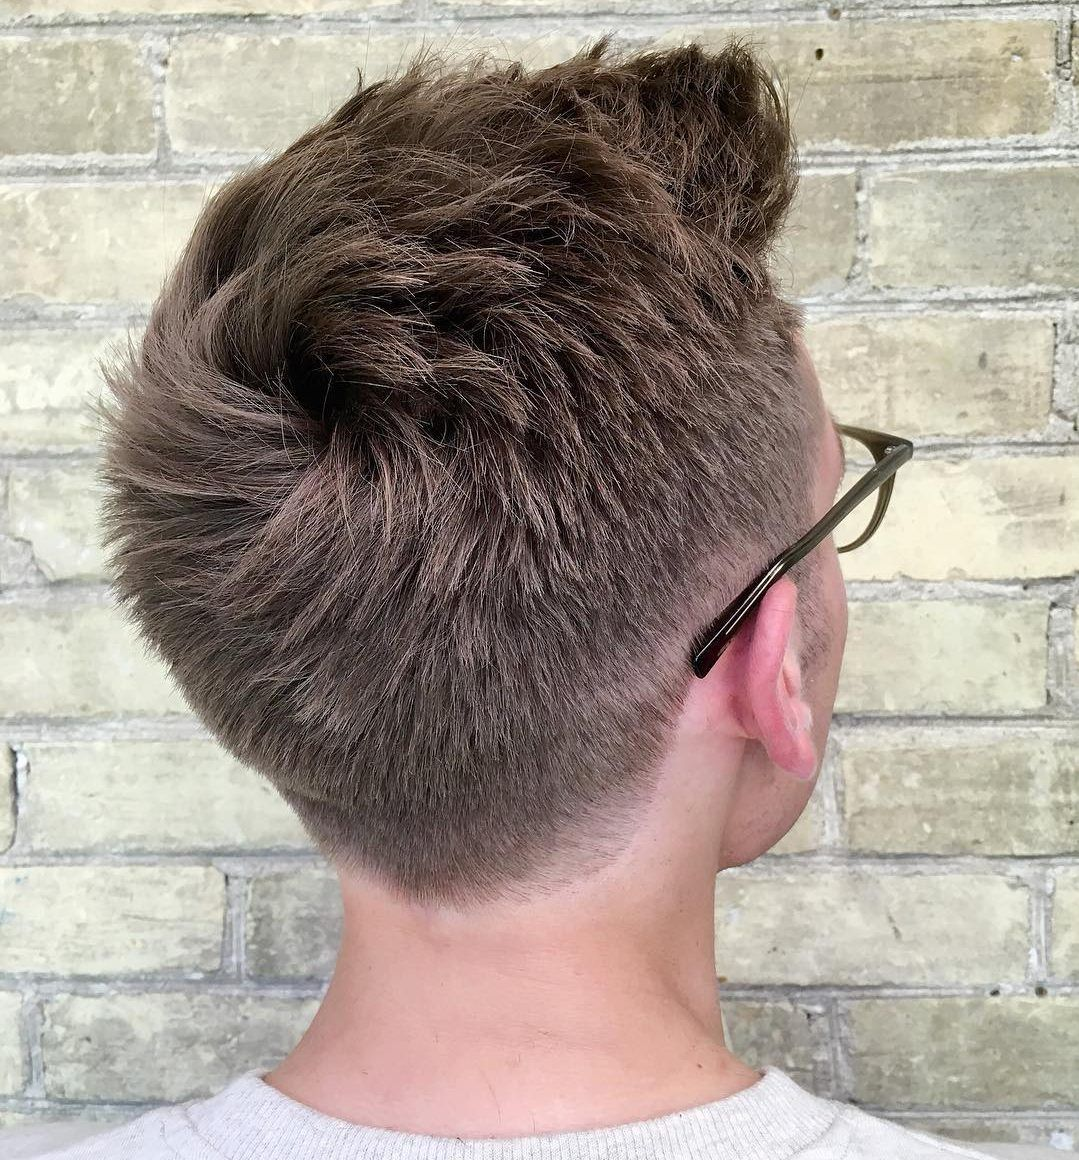 11 Cool Curly Hairstyles For Men Guy Haircuts Hair Trends Fall